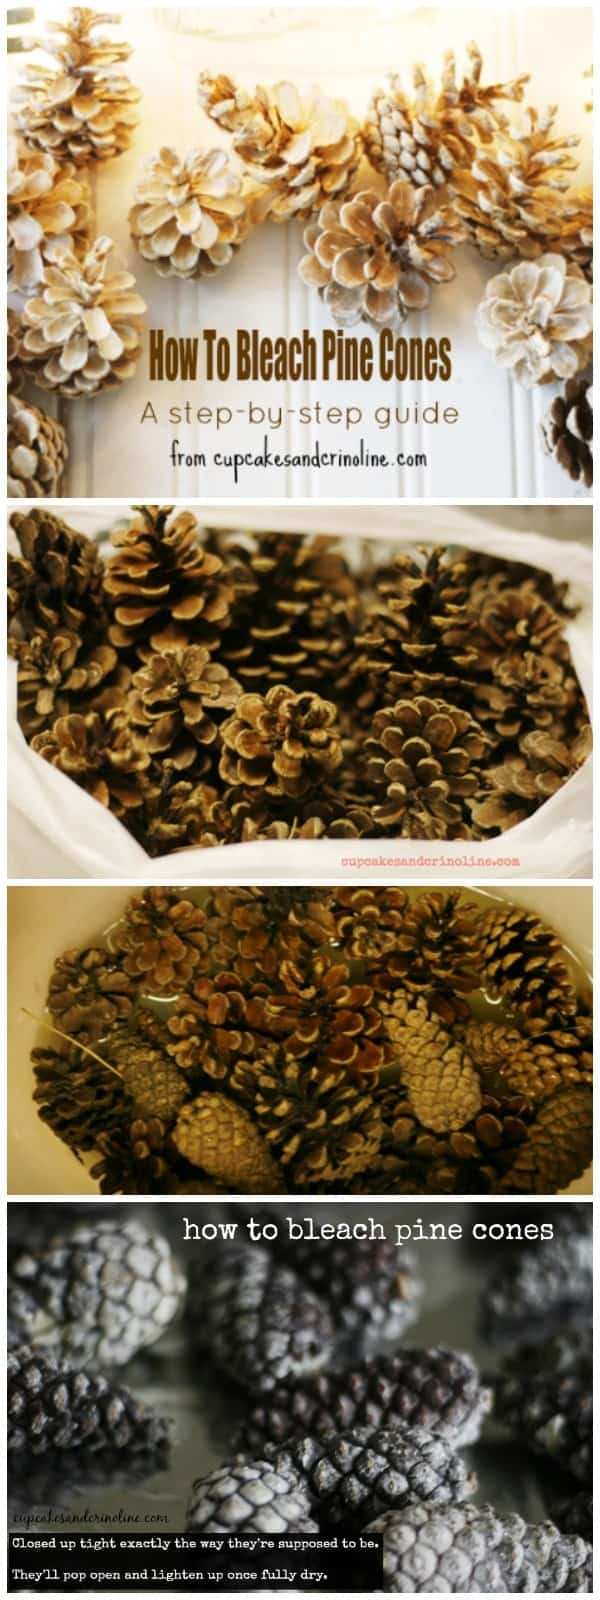 How-to Bleach Pine Cones. An easy to follow step-by-step guide from www.cupcakesandcrinoline.com